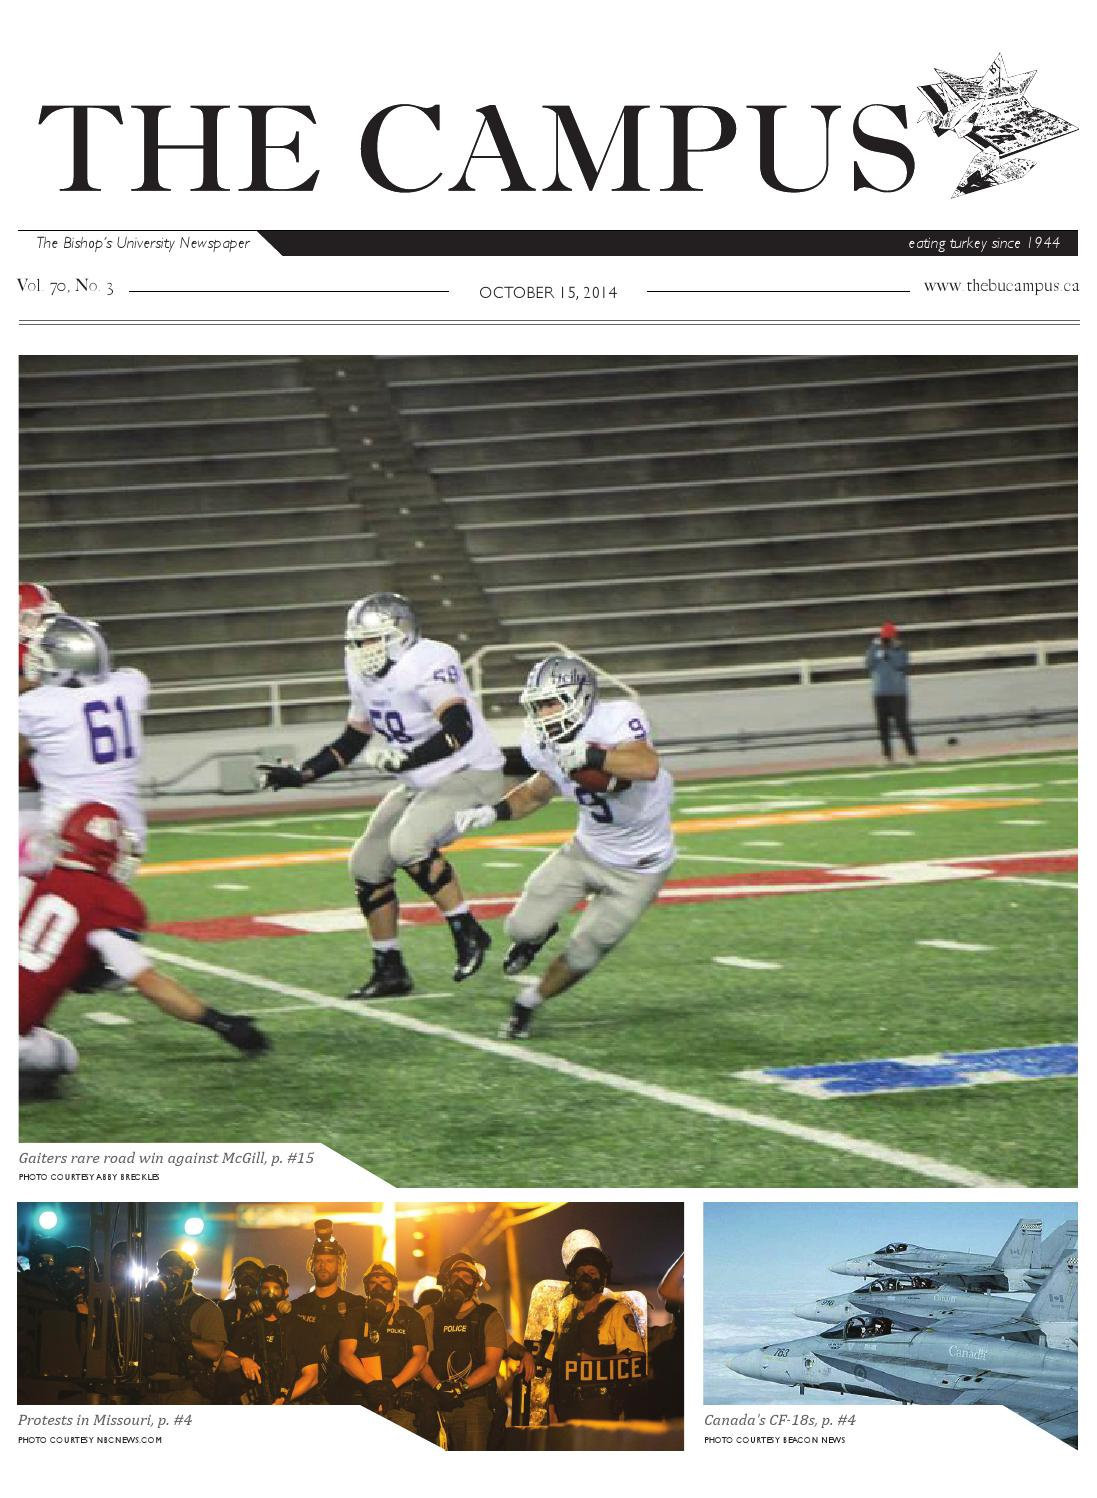 The Campus October 15, 2014 by The Campus Newspaper - issuu